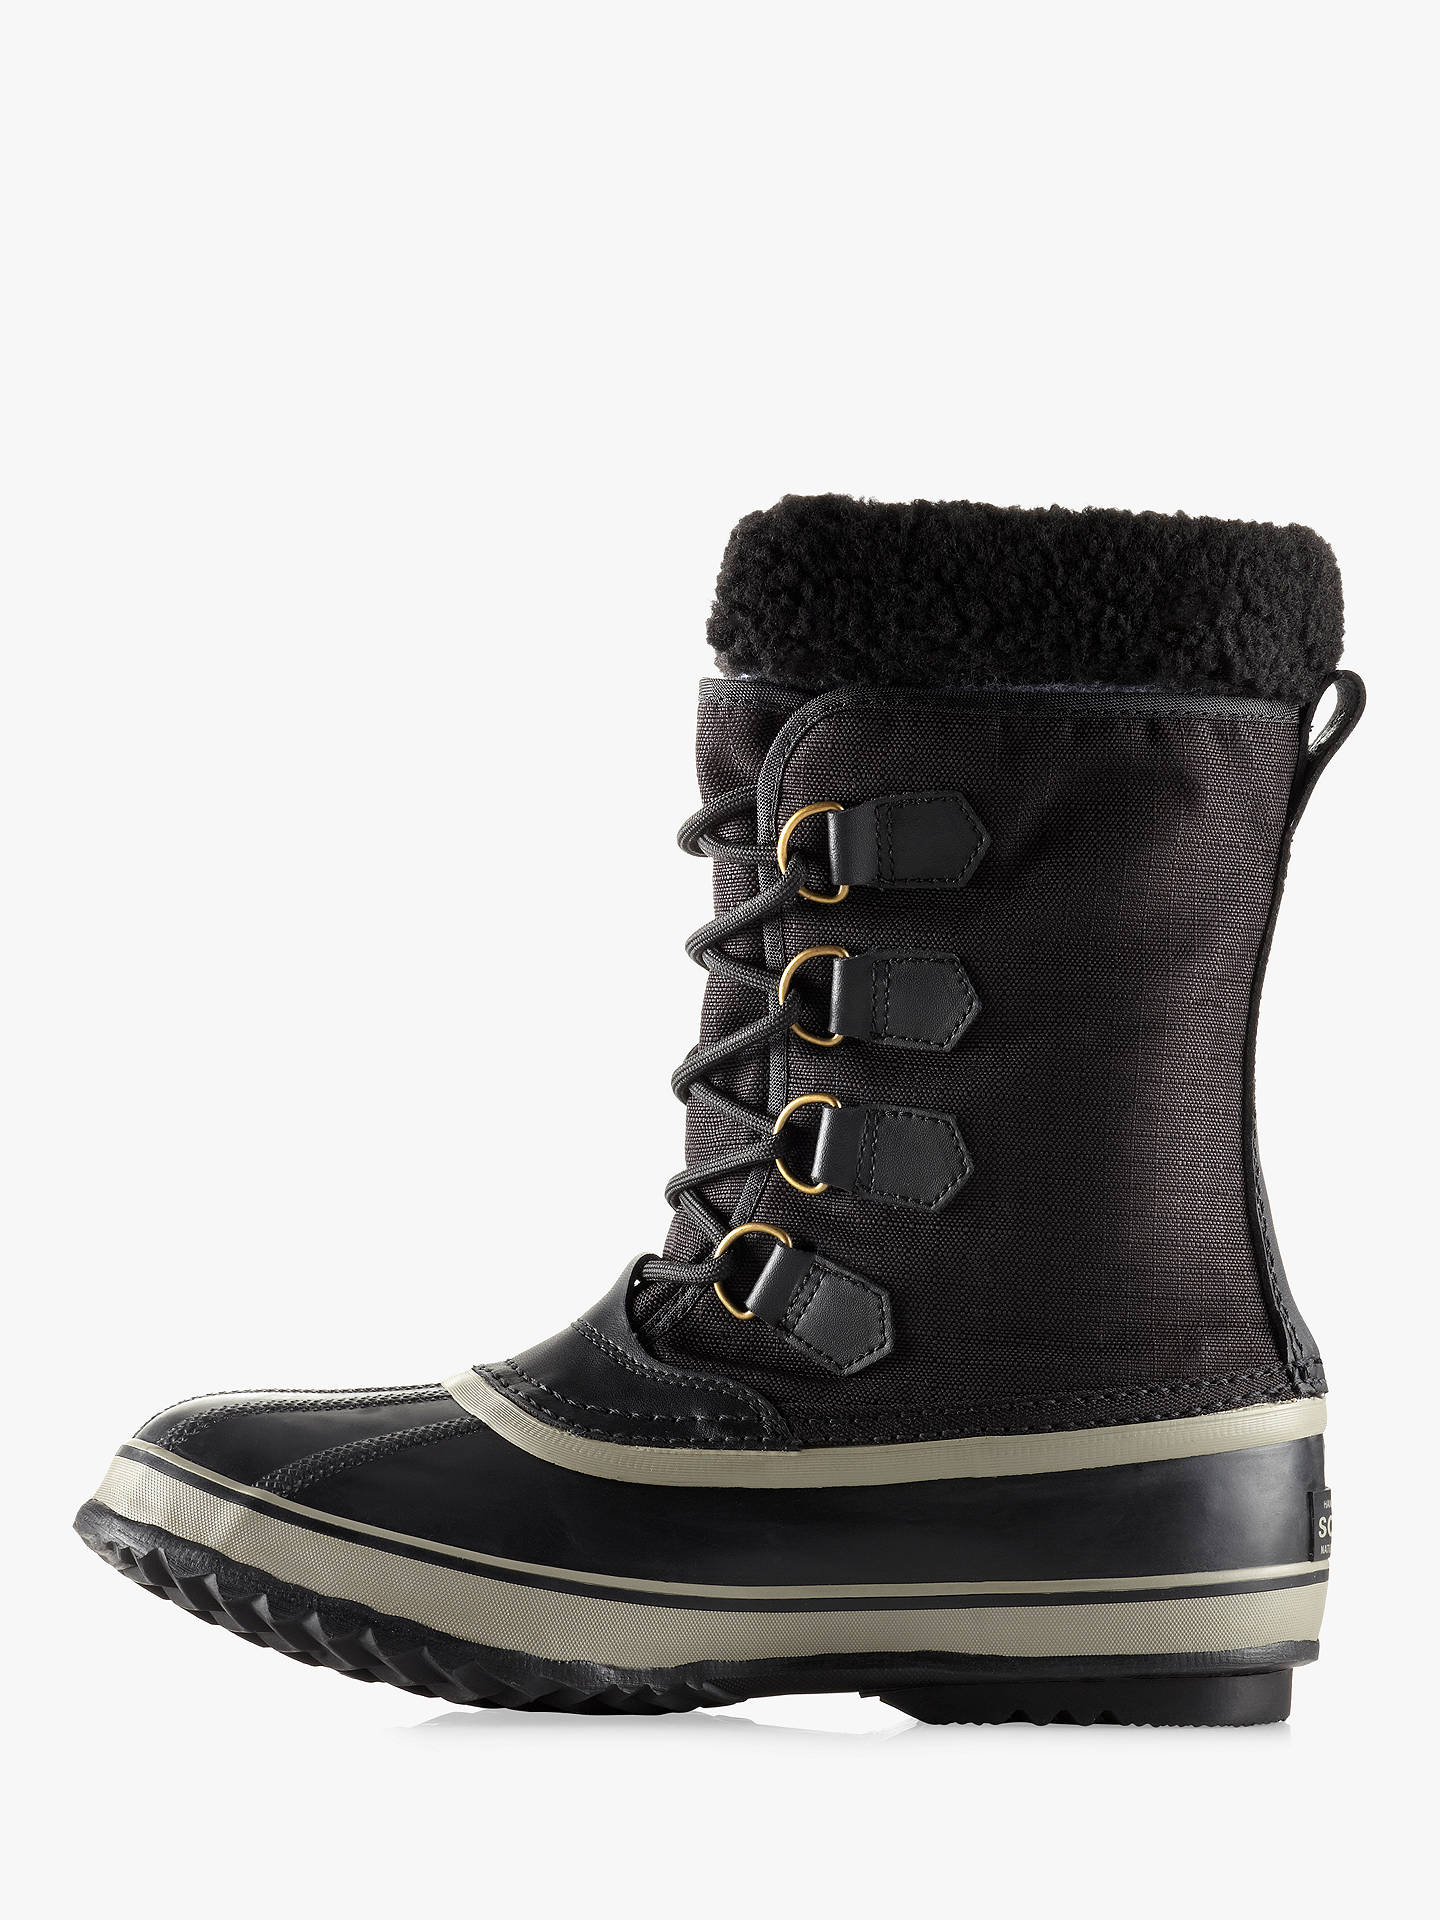 cac1e8df489 Sorel Pac Snow Boot, Black at John Lewis & Partners